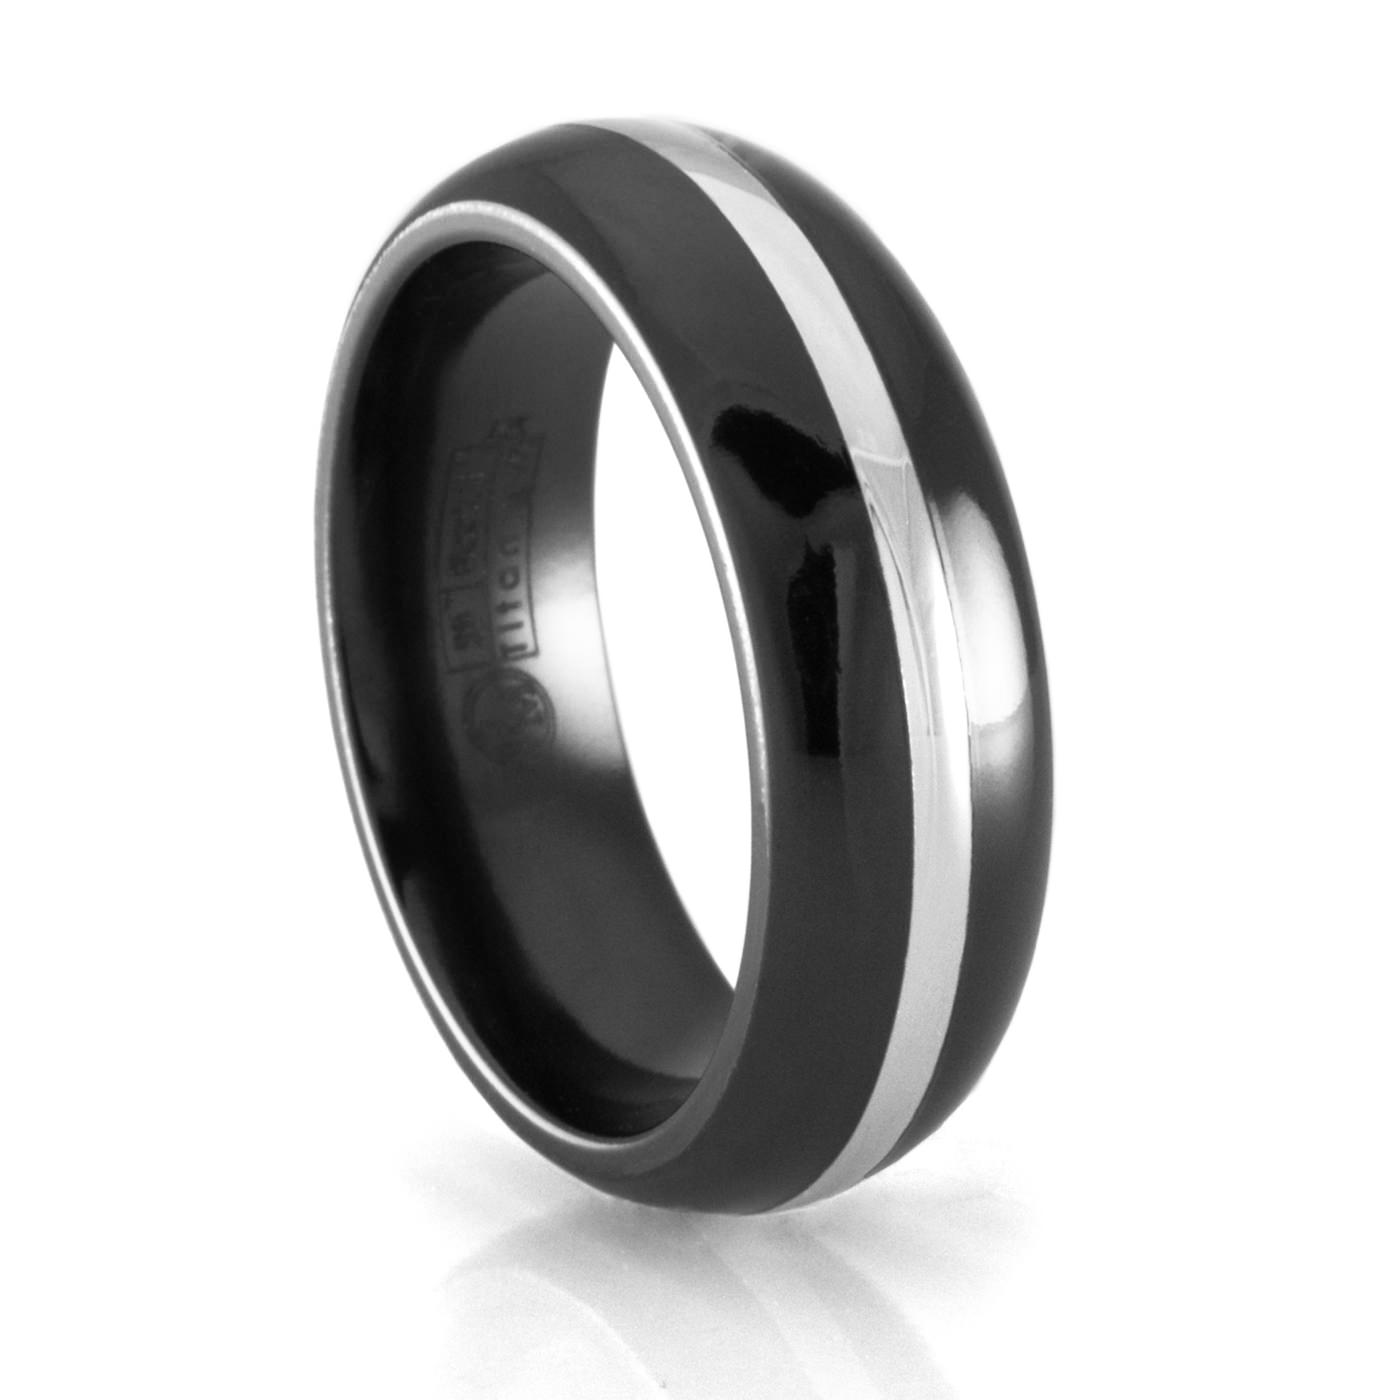 matching prayer bands product raniway ring lovers steel from black rings s her band wedding beveled cross and lord promise his titanium couple edge